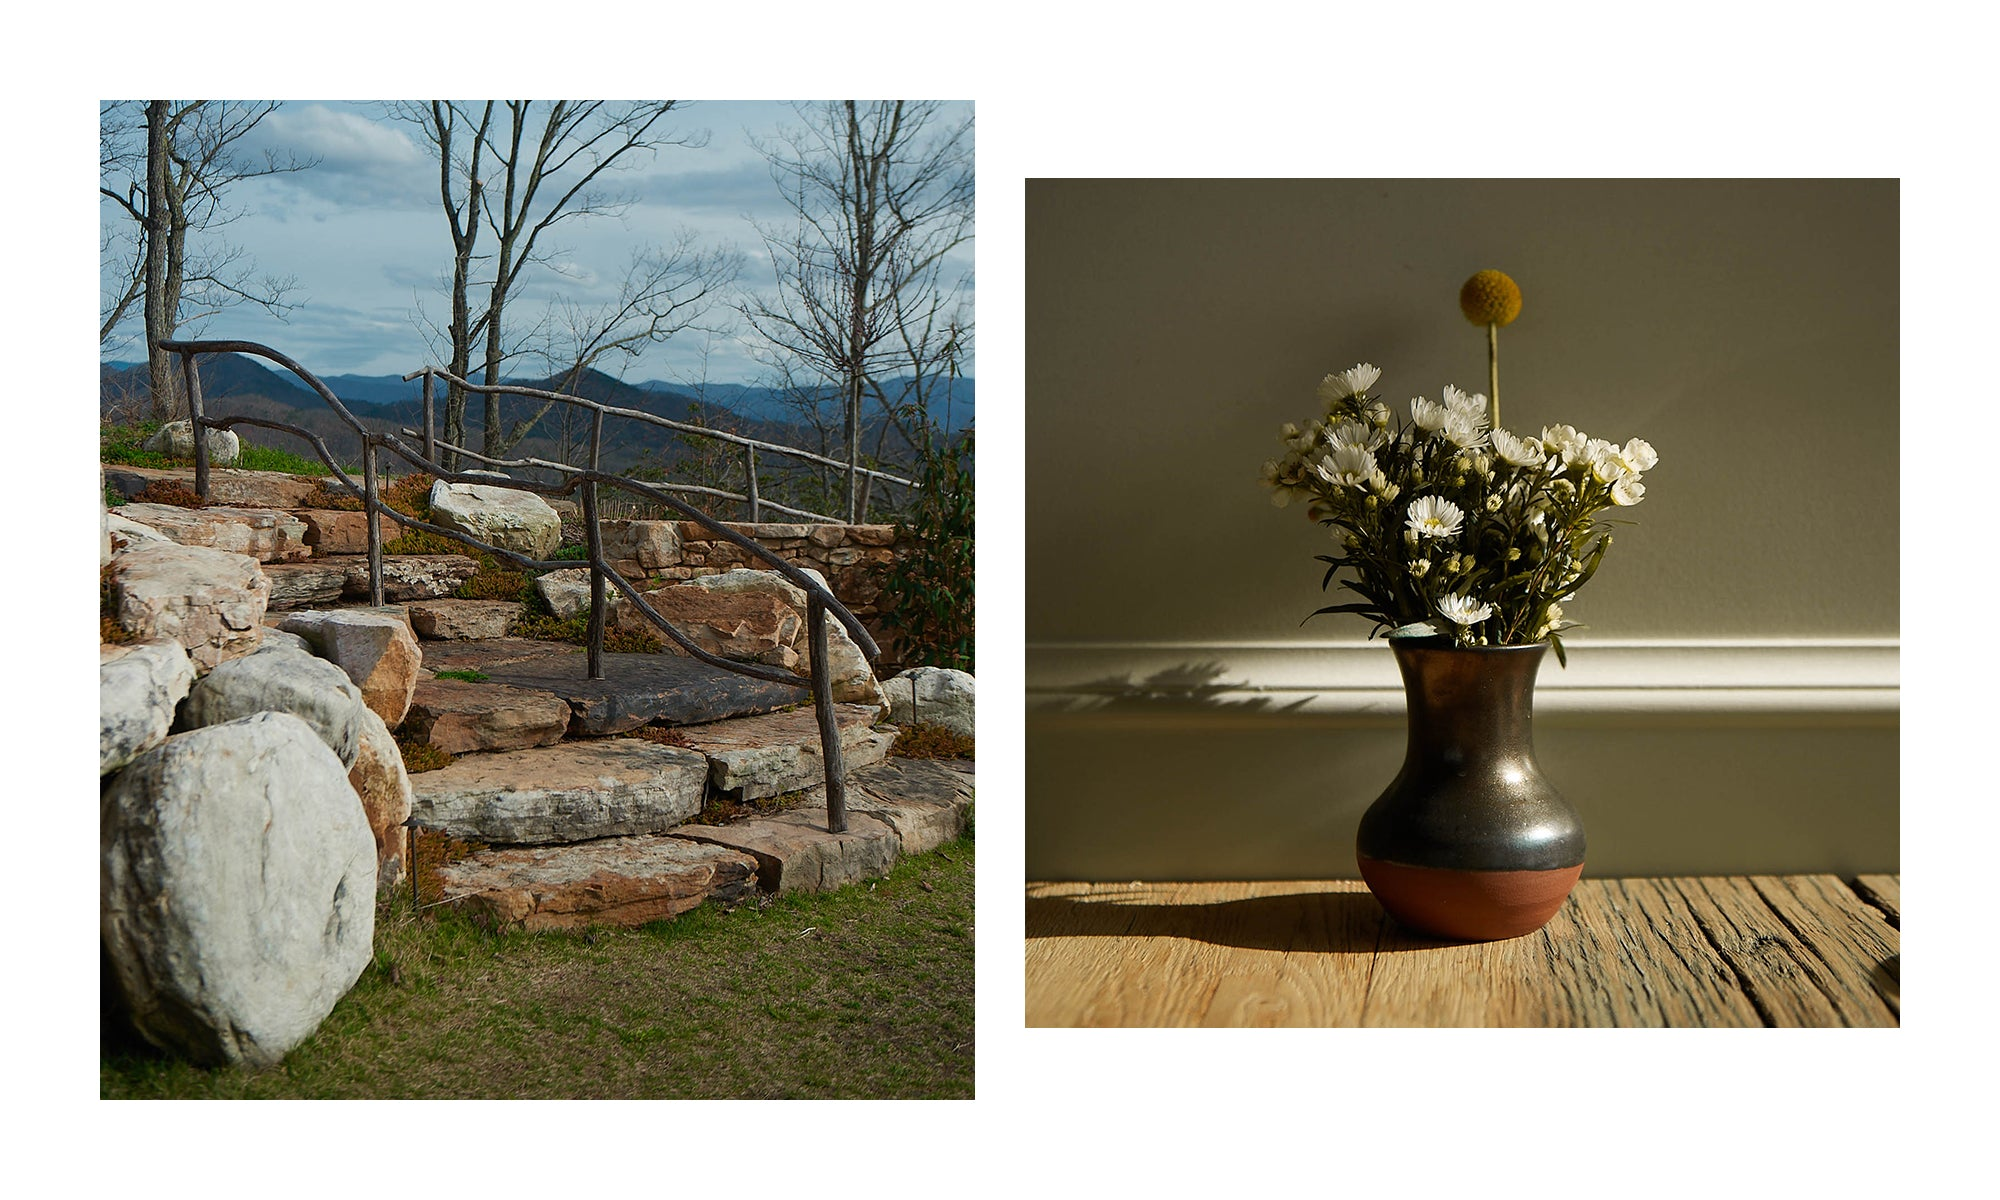 Photo from Blackberry Farm in Walland, TN showing stone steps and wildflowers in a vase